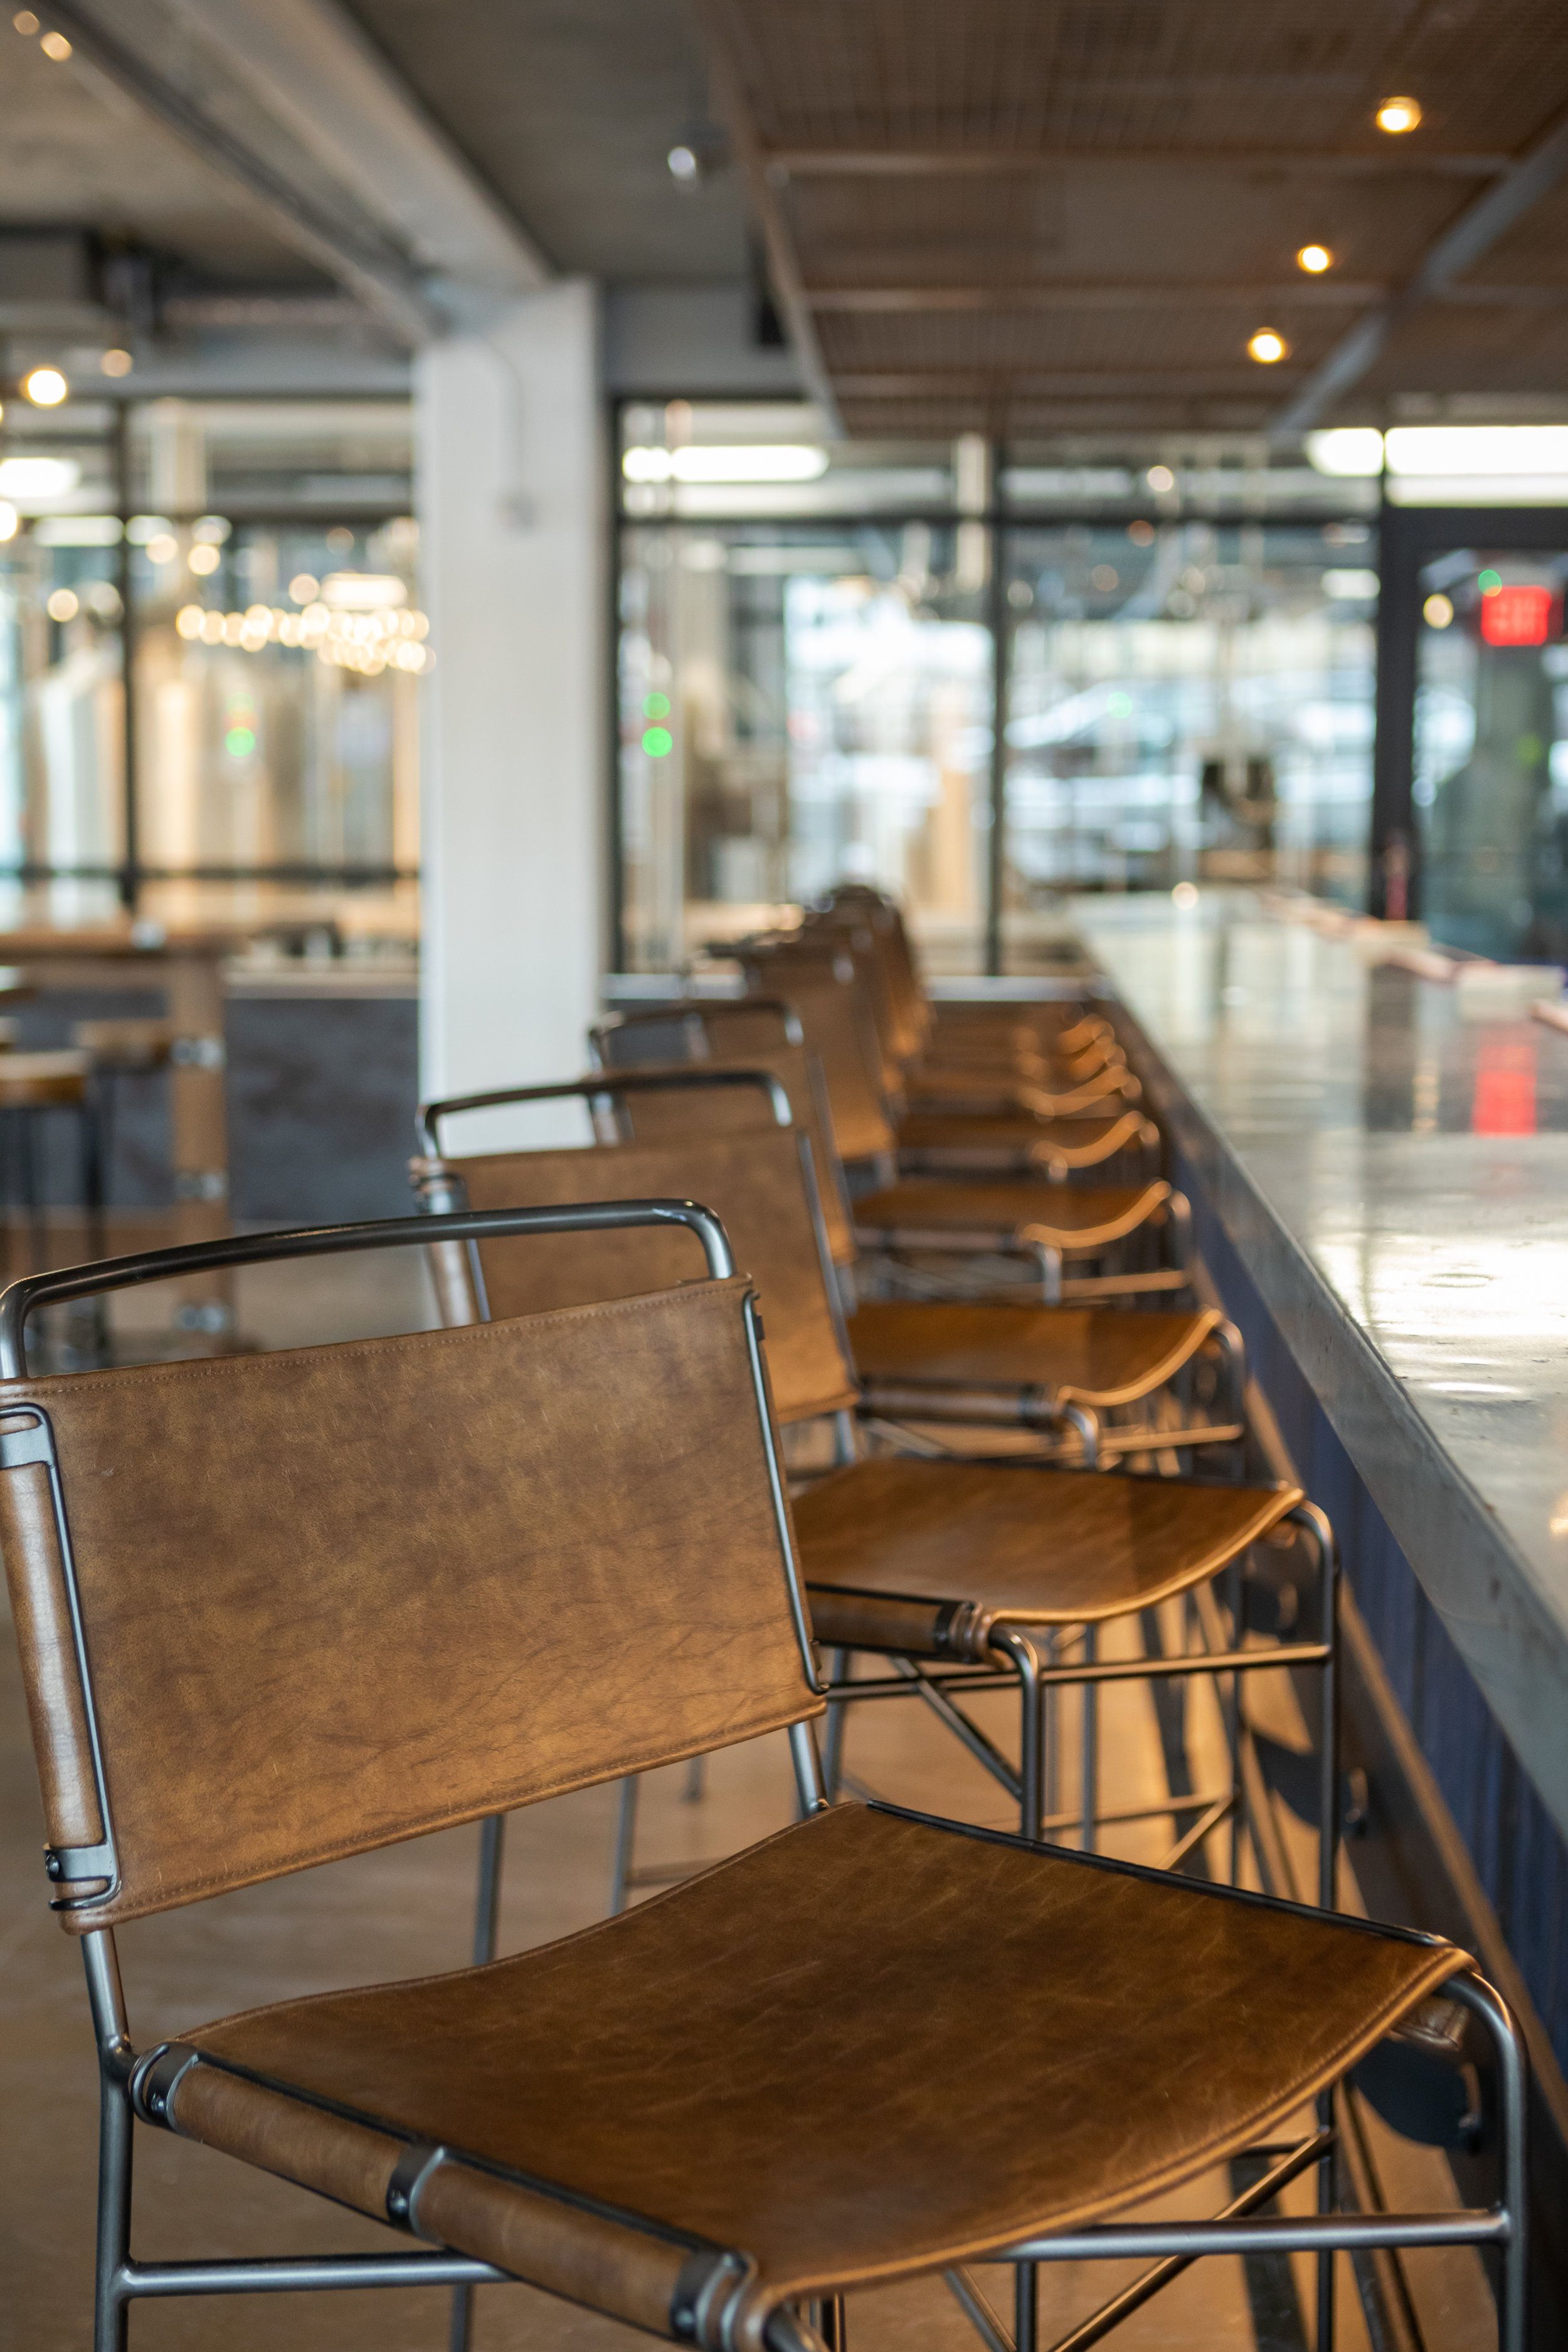 Wharton Bar Stools  - Also available in counter height stools & dining chairs. Shown in Distressed Brown Leather. Additionally available in Stonewash Grey Canvas & Modern Olive Velvet.